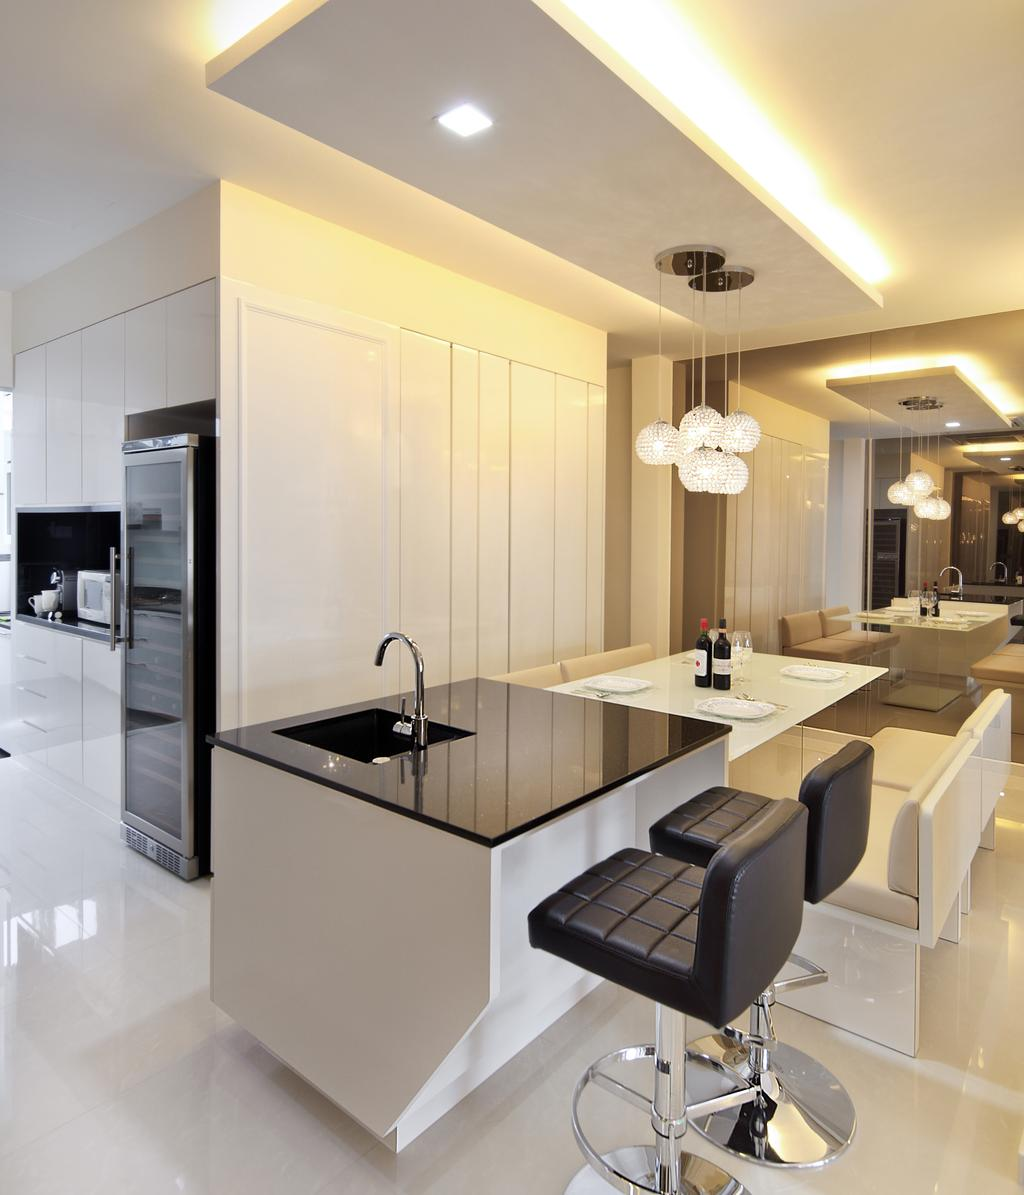 Minimalistic, Landed, Dining Room, Lichi Avenue, Interior Designer, Form & Space, Appliance, Electrical Device, Fridge, Refrigerator, Indoors, Interior Design, Furniture, Dining Table, Table